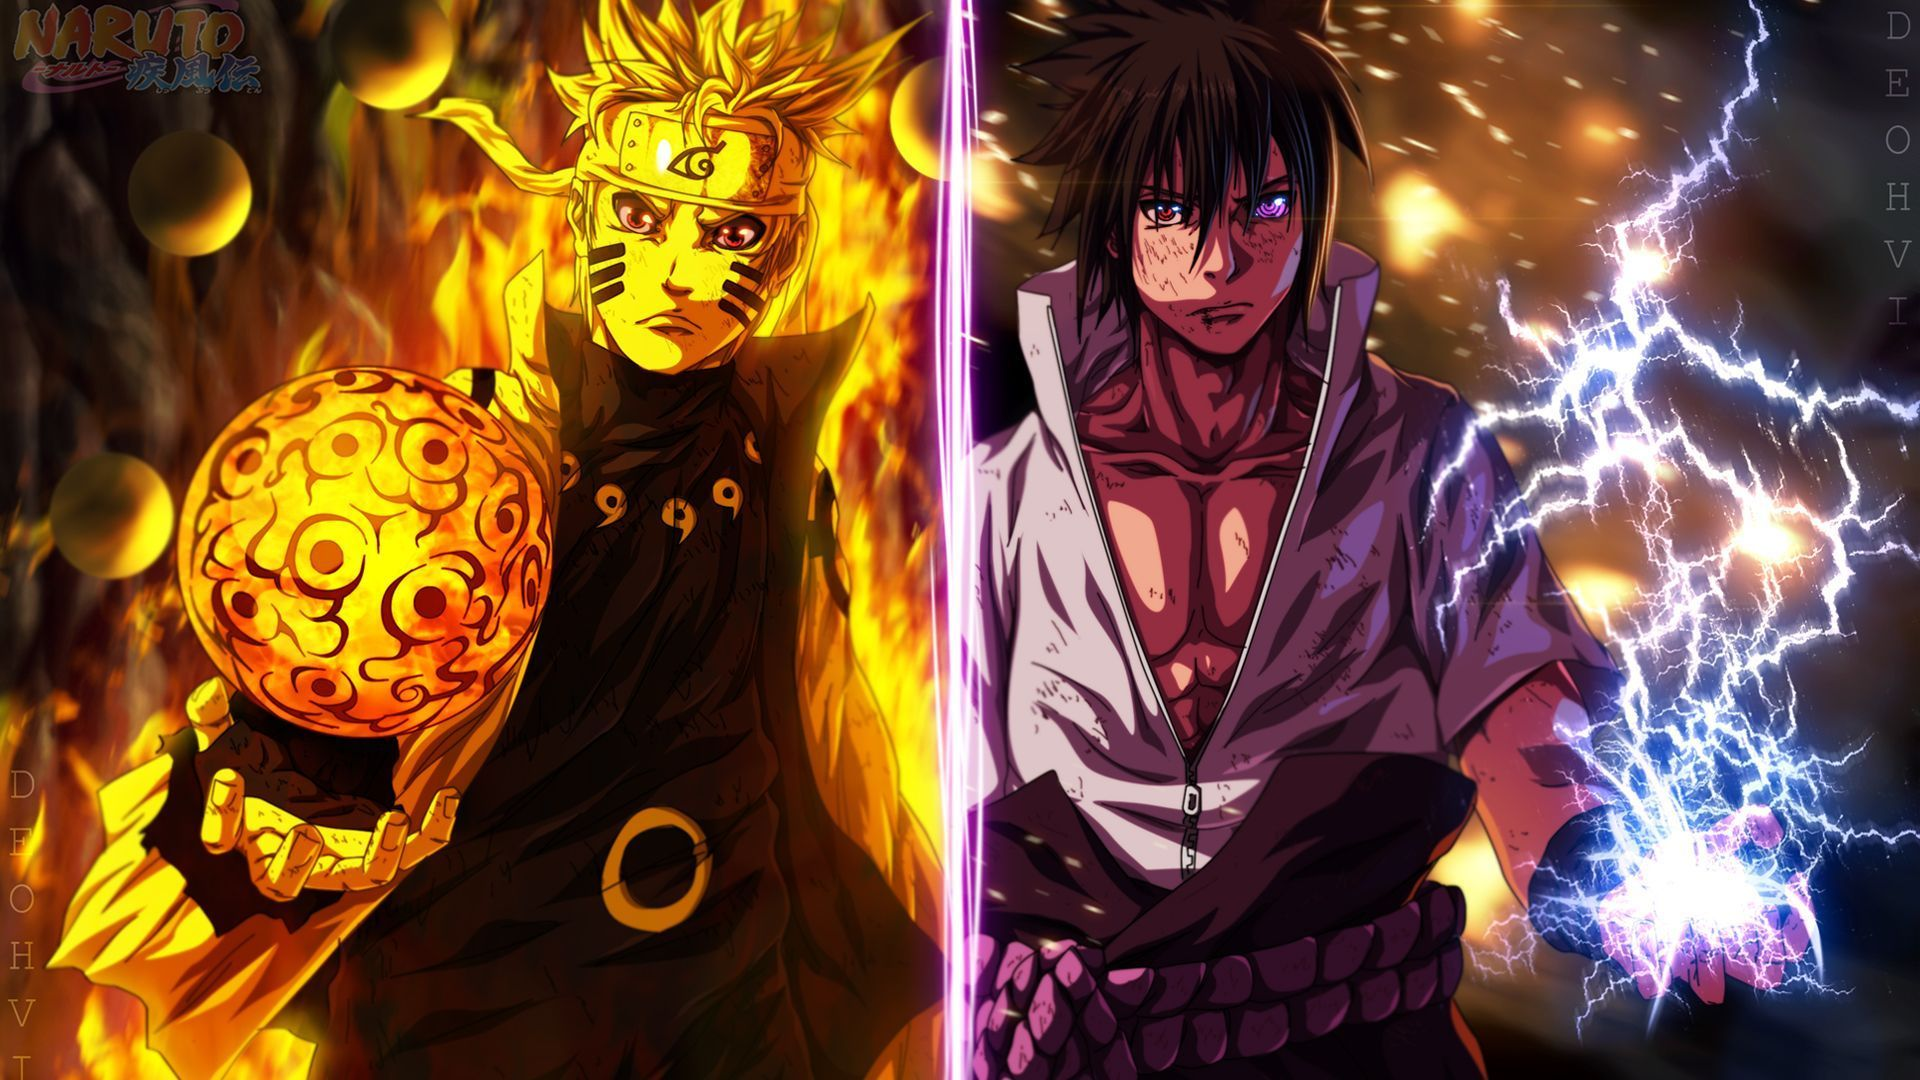 Naruto Vs Sasuke 4k Wallpaper For Android On Wallpaper 1080p Hd